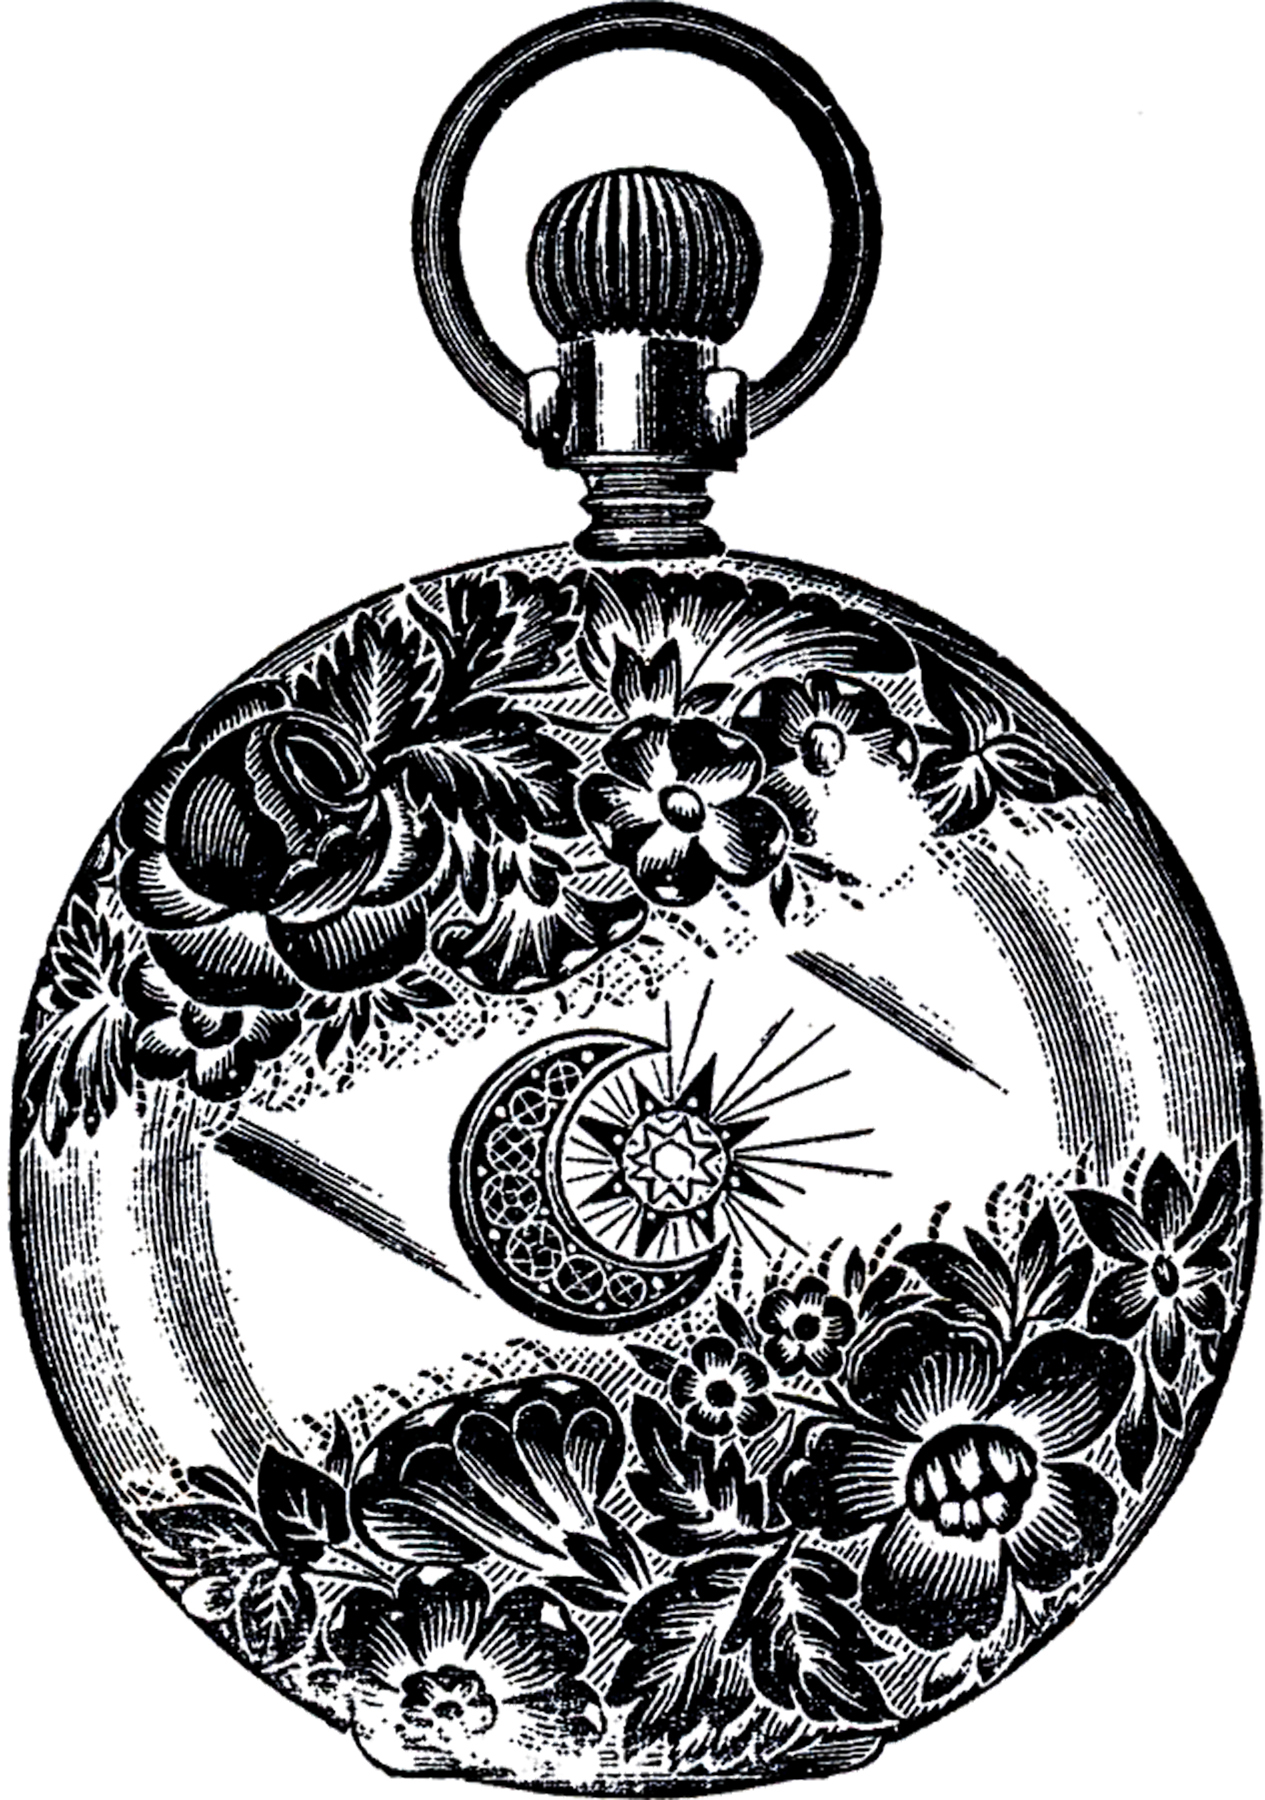 Pocket Watch Drawings: Public Domain Pocket Watch Image